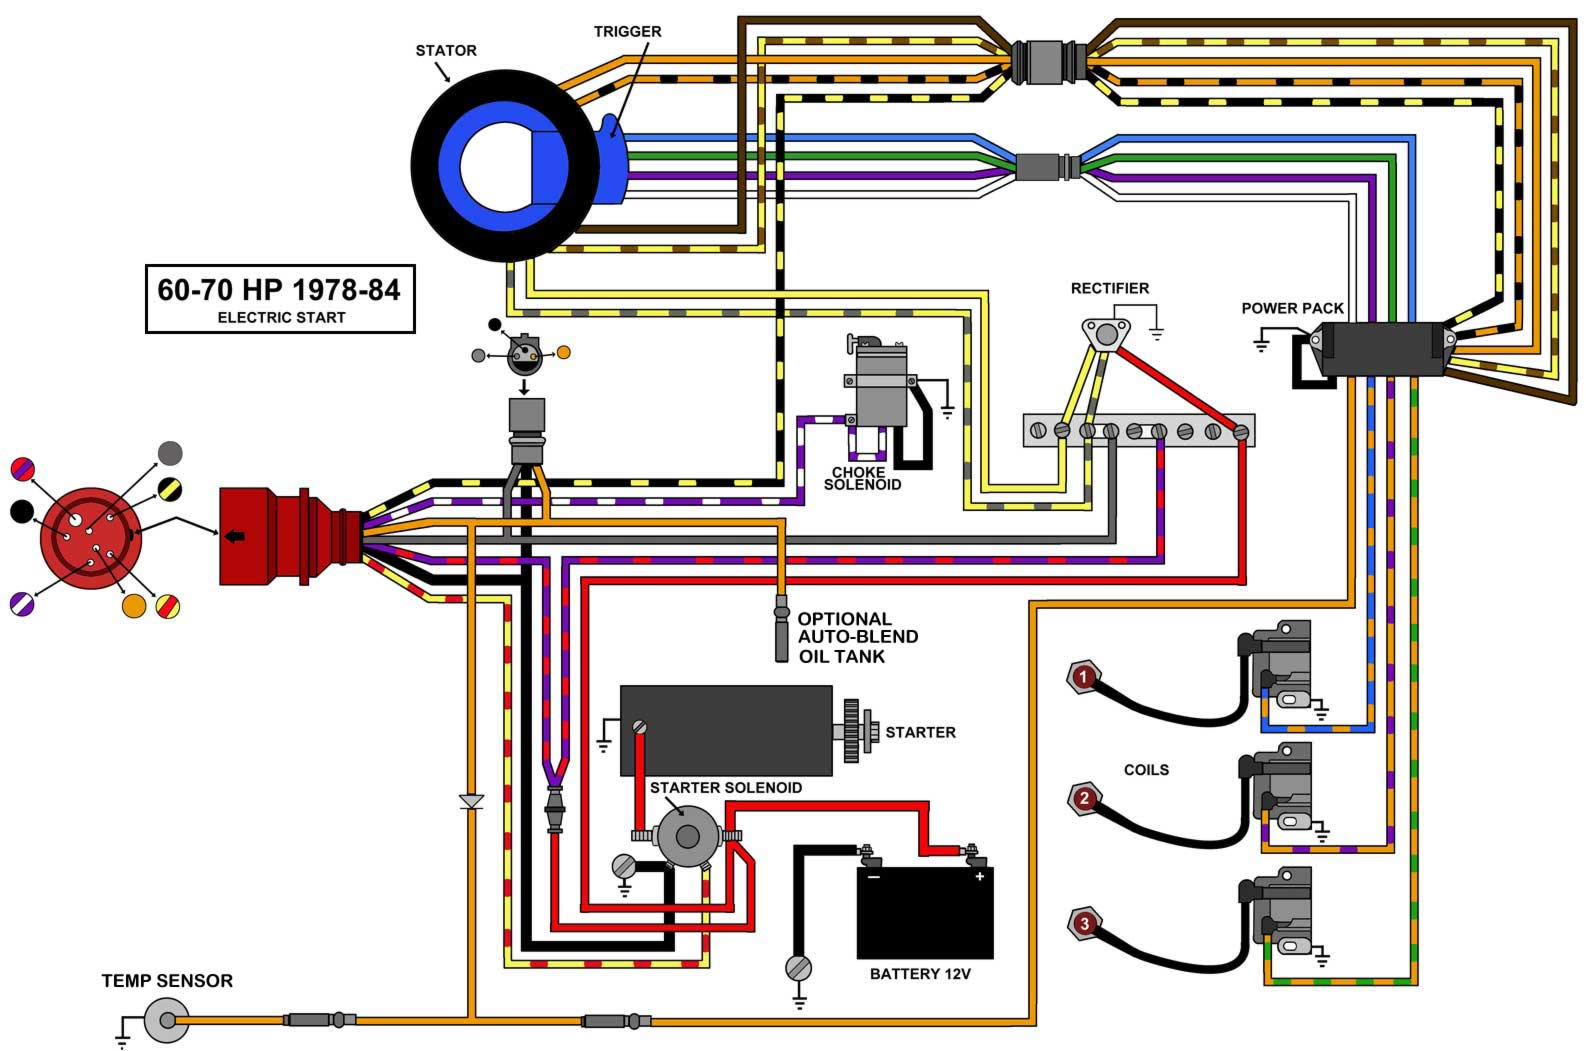 78 84_3 CYL_EL wiring tach from johnson controls page 1 iboats boating forums wiring diagram johnson 50 hp outboard at gsmportal.co